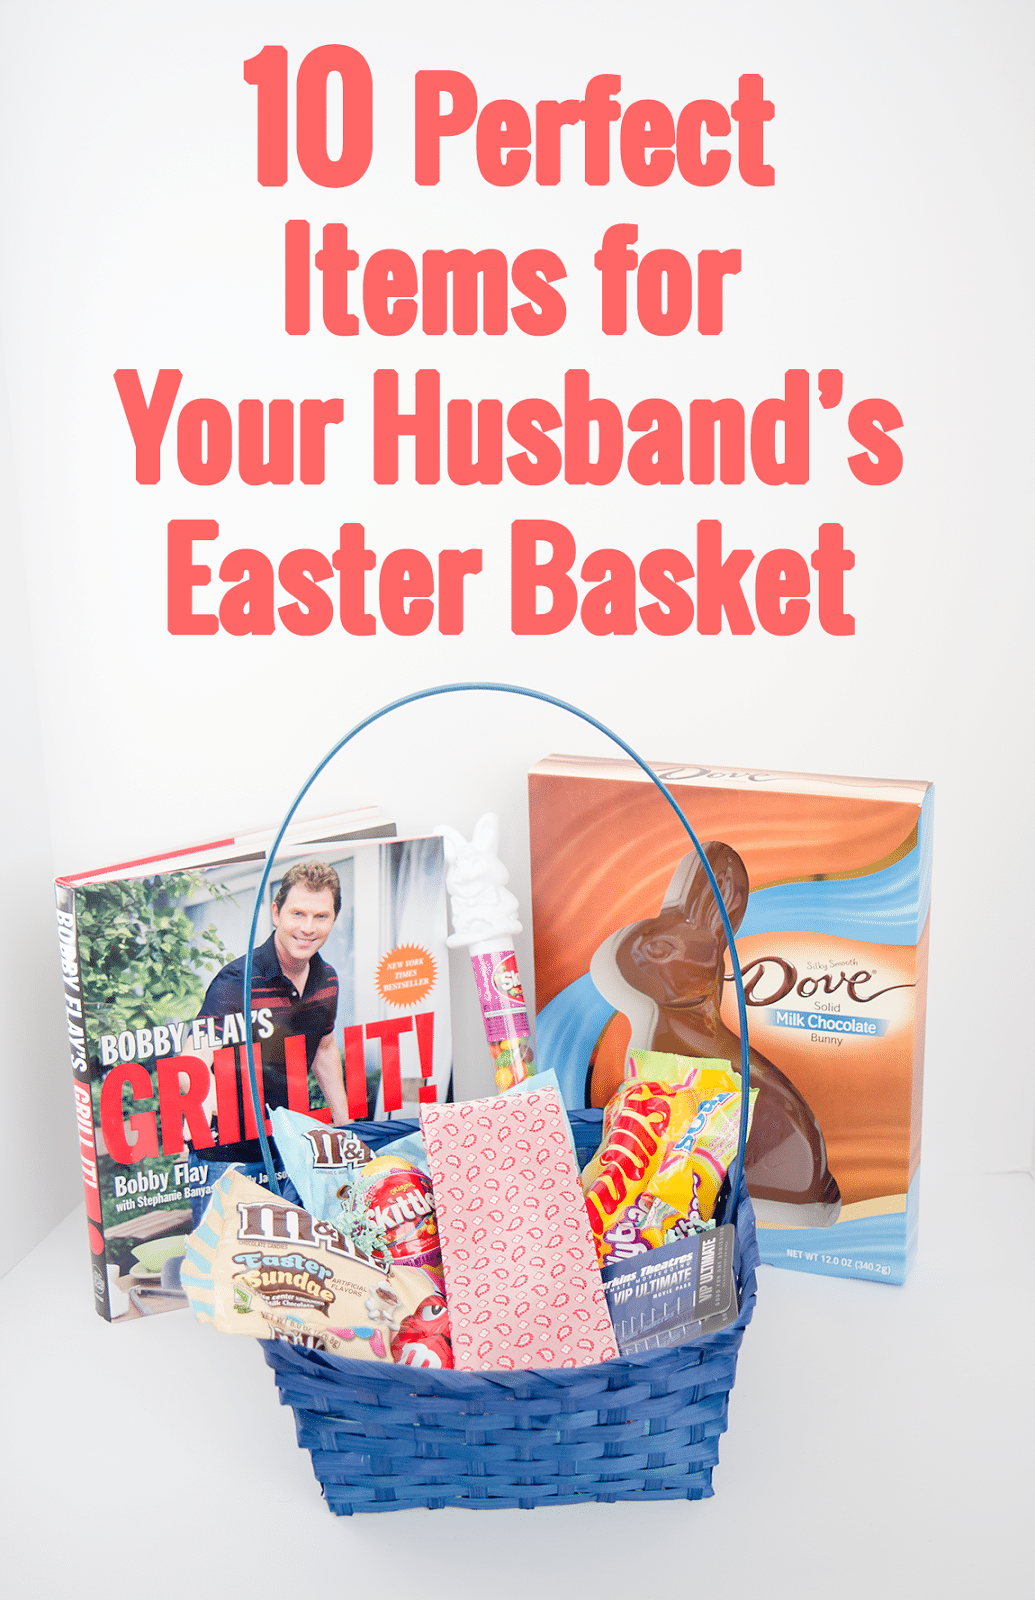 Husbands easter basket sometimes you just need some help with huband easter basket ideas here are 10 perfect items for your husbands easter basket negle